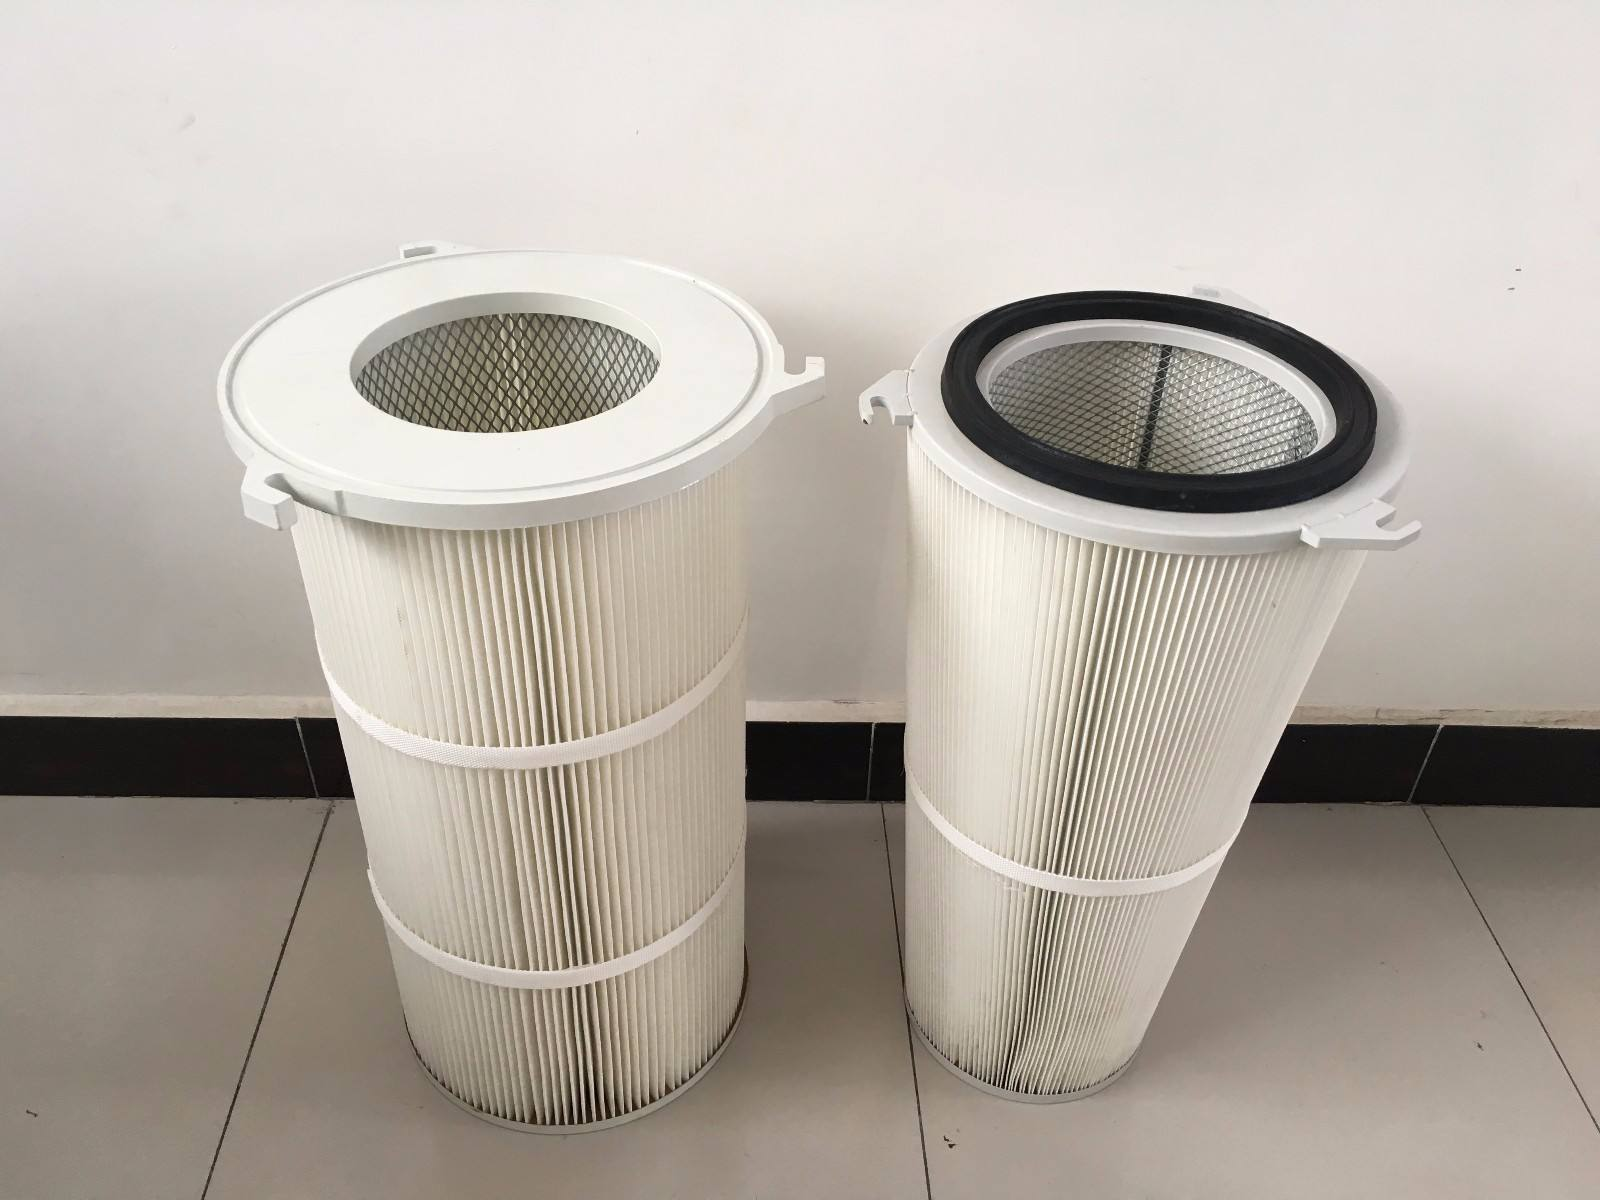 Machine air filters